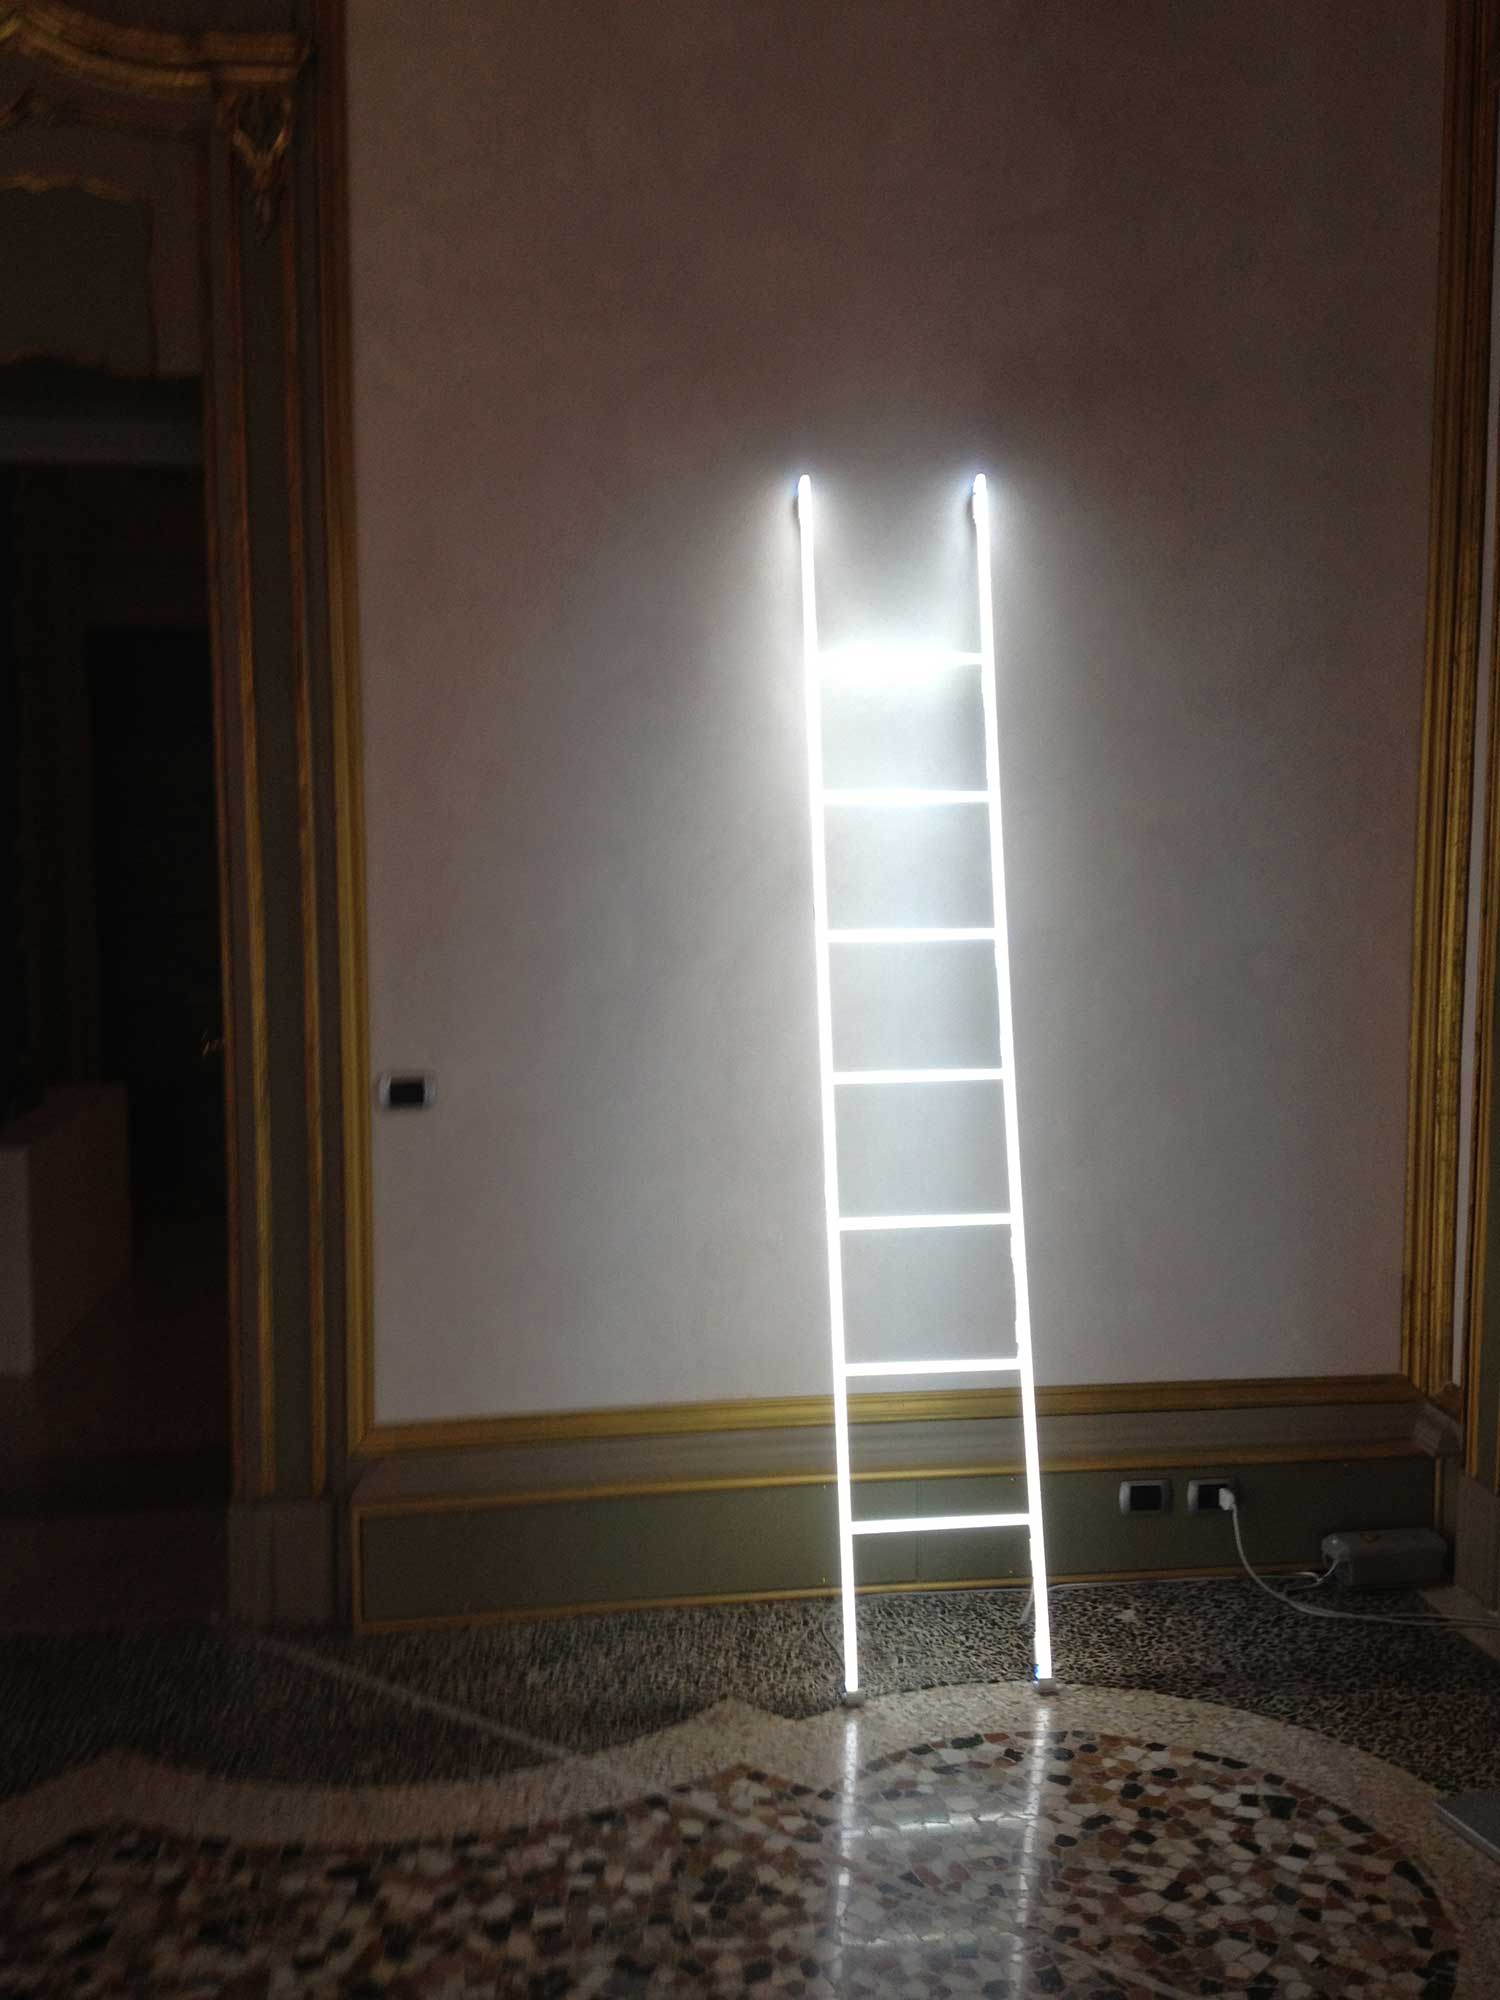 Neon Light Installations by Massimo Uberti | Yellowtrace